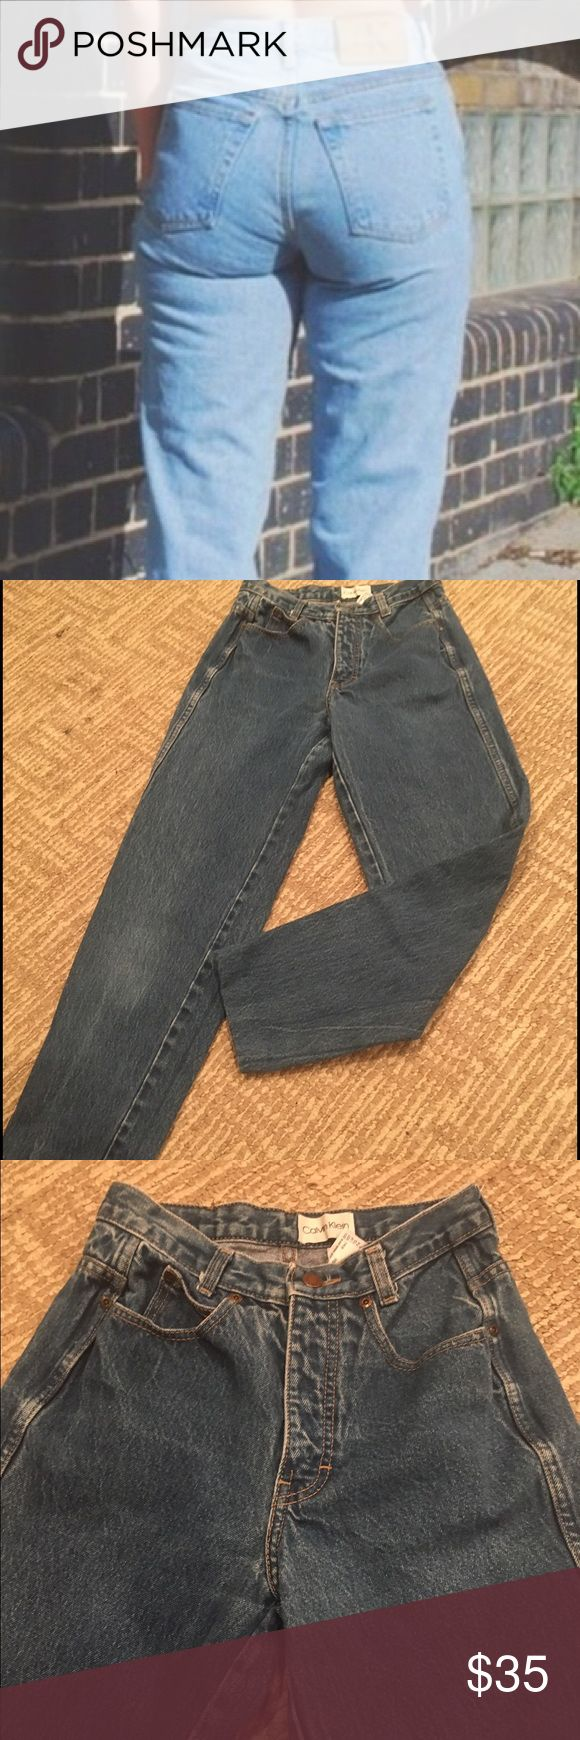 CALVIN KLEIN MOM JEANS DARK WASH Perfect condition Calvin Klein mom jeans high waisted - only flaw is that they are genes to be a bit cropped As shown in photo! Are cute rolled up! First photo is for model purposes and are not the pants- the rest of the photos are! 13 inches waist ( are high waist so above hips) 12 1/2 inseam-  37 1/2 inches long! Fast shipping follow for deals bundle for discounts! Calvin Klein Jeans Boyfriend